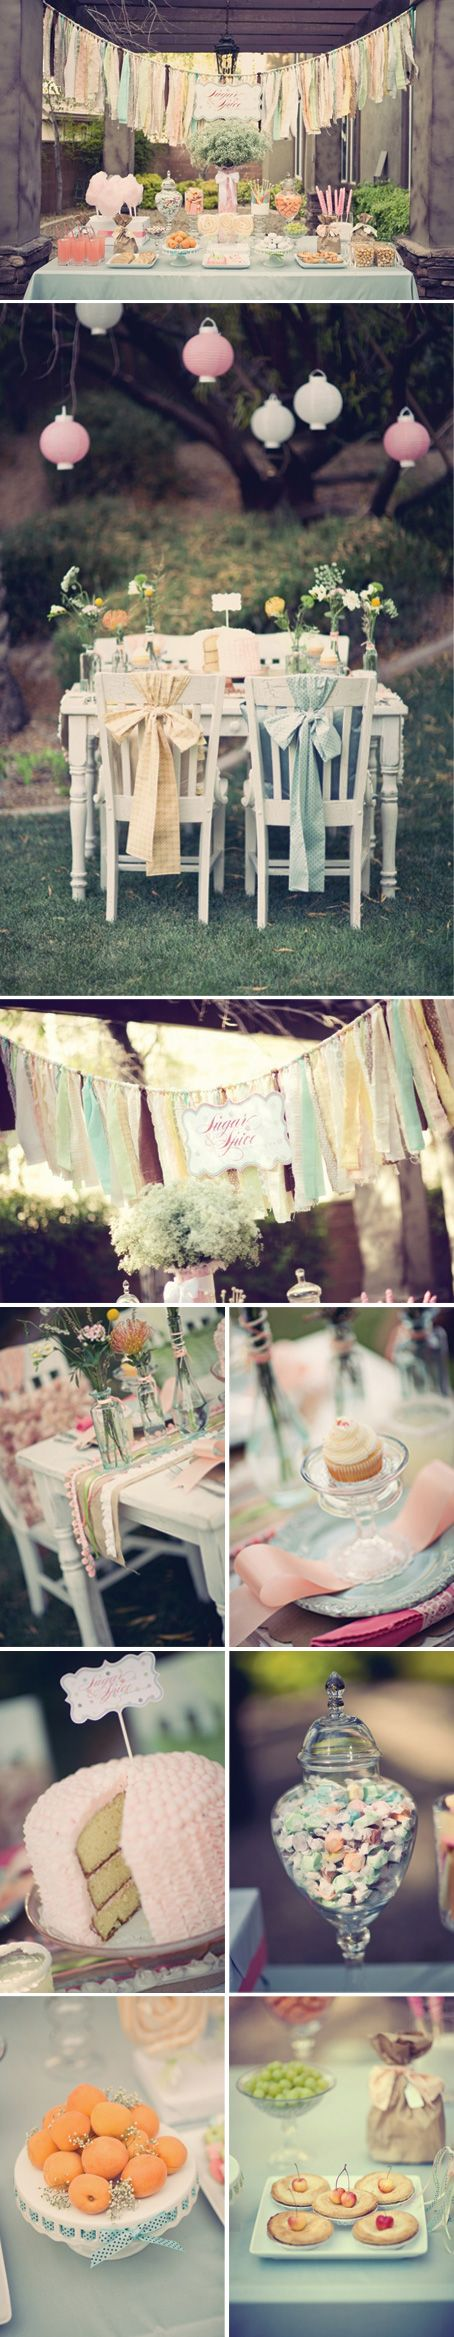 Gorgeous party decor: